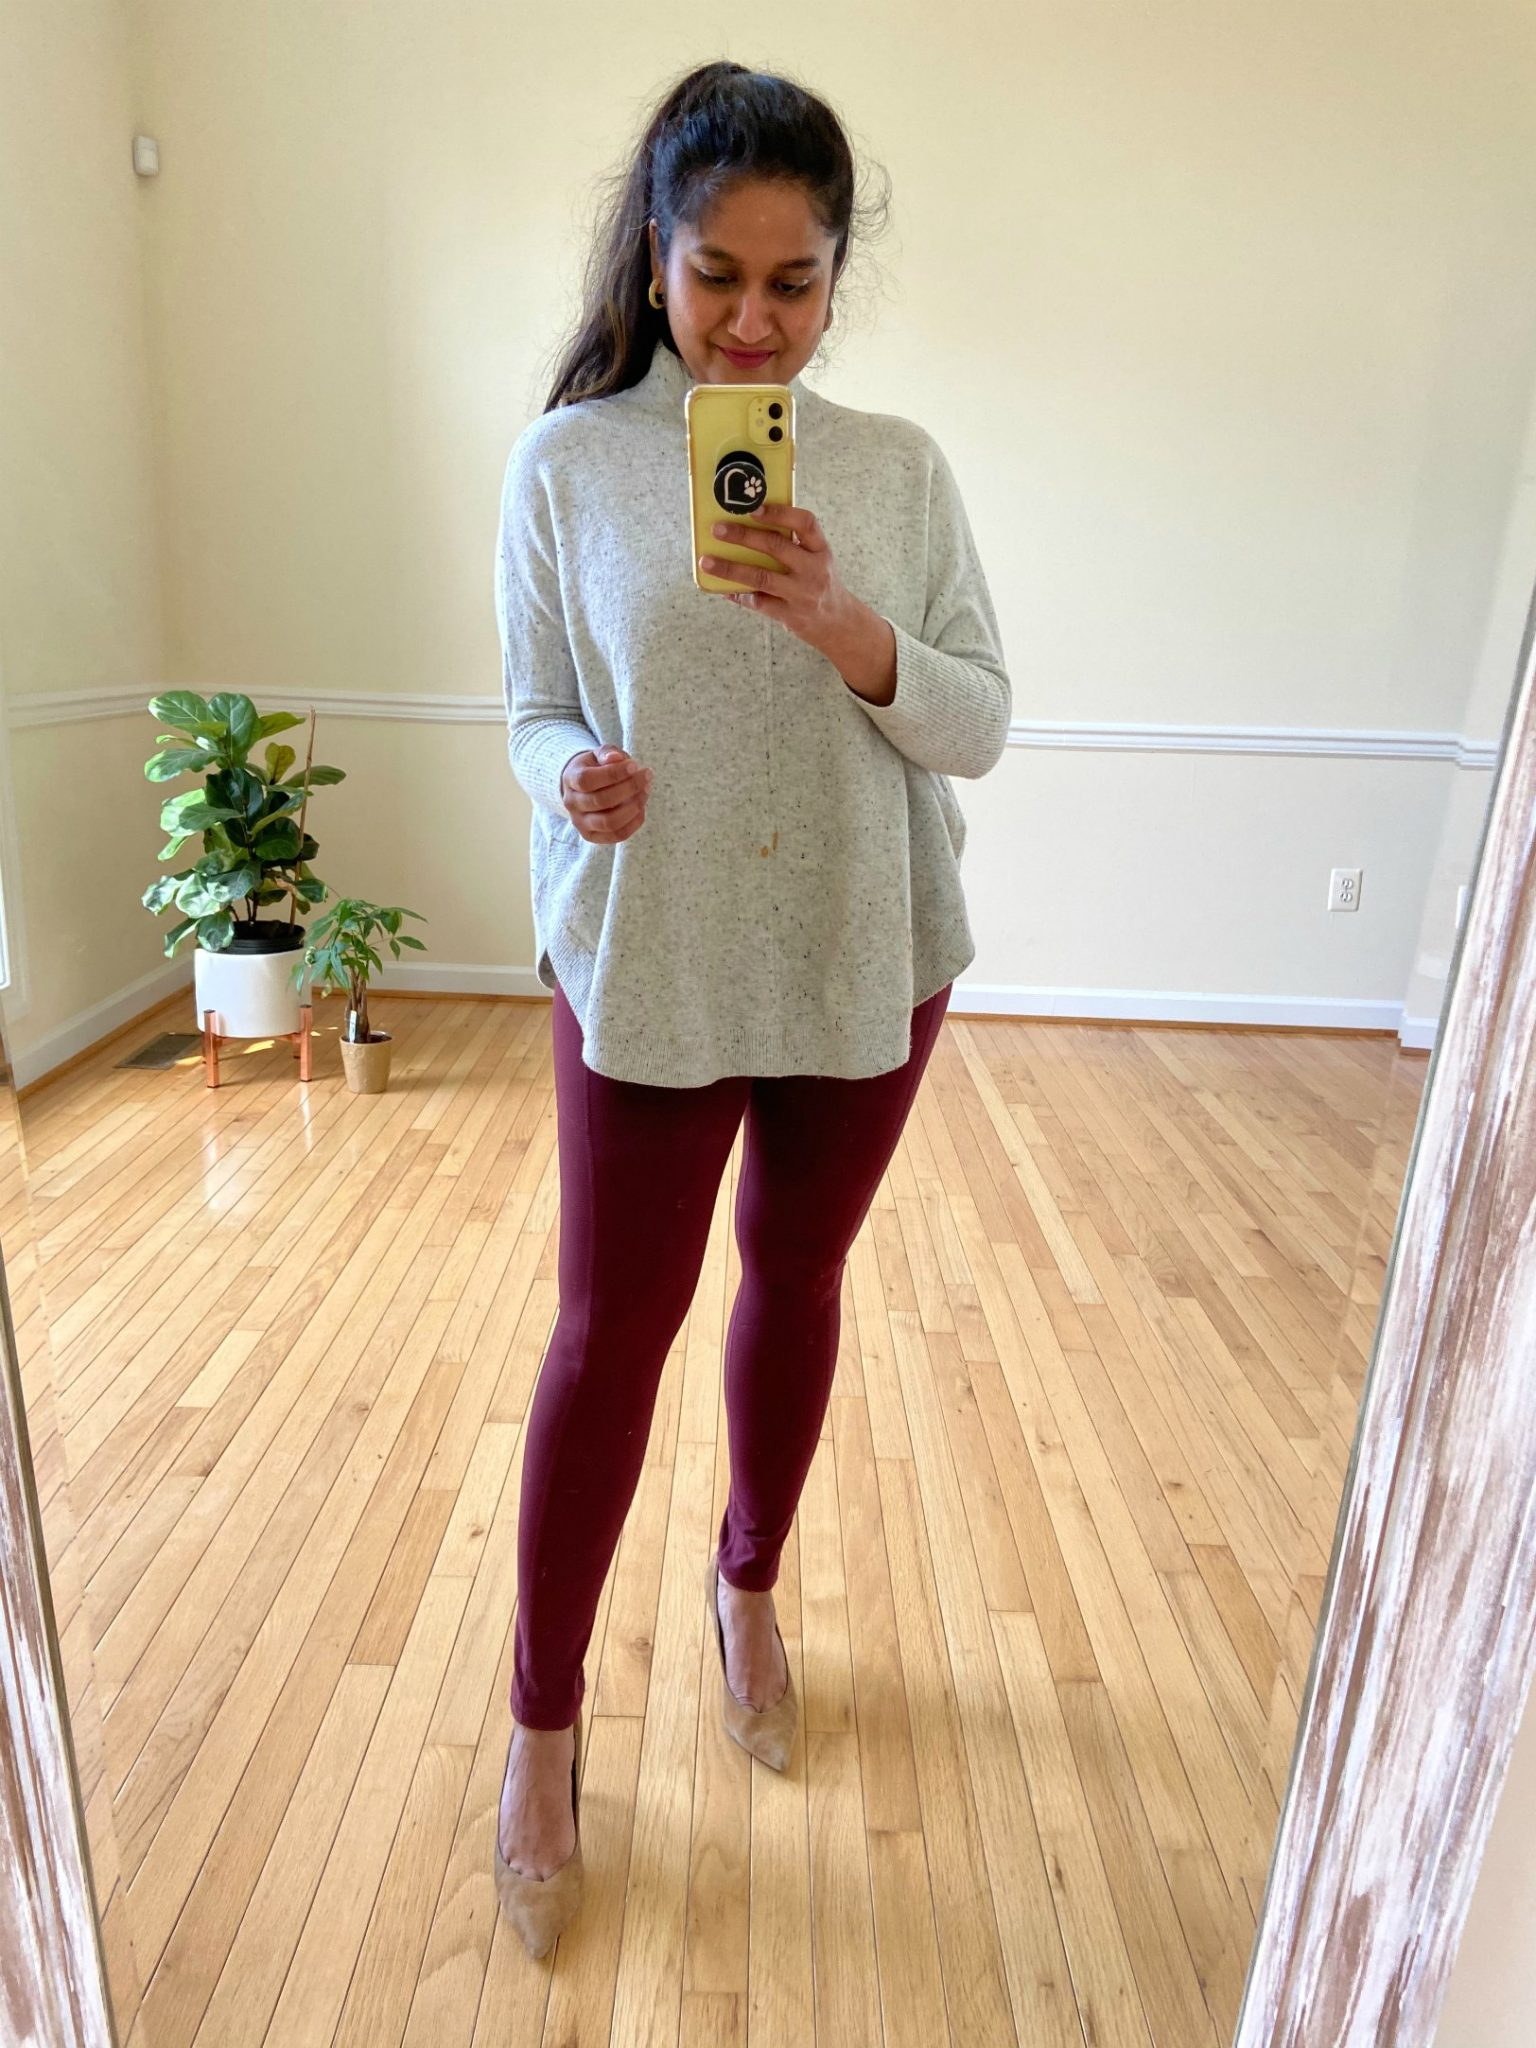 How to Wear Burgundy/Maroon Leggings All through the Year (Practical Outfit Ideas) featured by top US lifestyle blog, Dreaming Loud: image of a woman wearing Loft poncho sweater, Amazon burgundy leggings, Banana Republic 12 hour pumps | Burgundy Leggings Outfit by popular Michigan fashion blog, Dreaming Loud: image of a woman wearing a Loft FLECKED MOCK NECK PONCHO SWEATER, Amazon Fengbay High Waist Yoga Pants with Pockets, Banana Republic Madison 12-Hour Pump, and BaubleBar MARCIELLA HOOP EARRINGS.